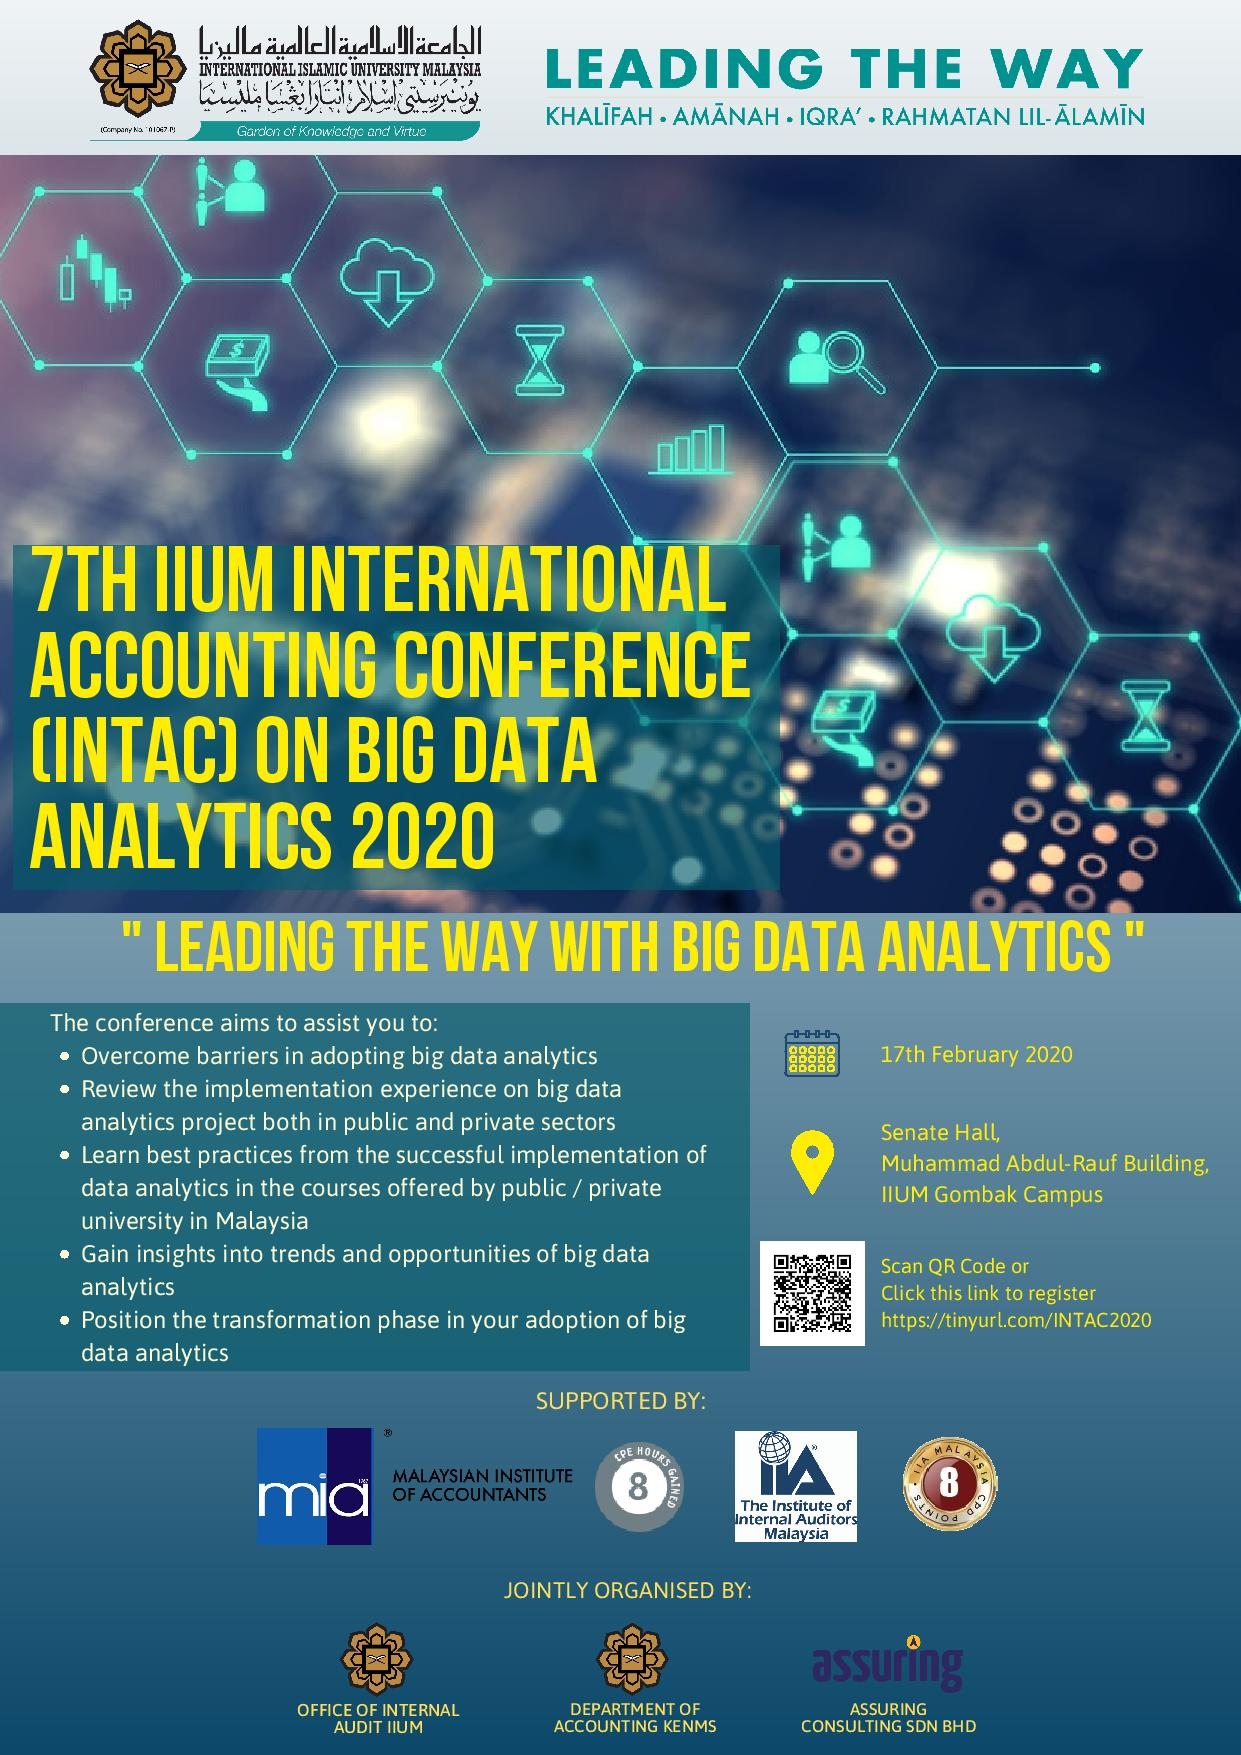 7TH IIUM INTERNATIONAL ACCOUNTING CONFERENCE ON BIG DATA ANALYTICS (INTAC 2020): LEADING THE WAY WITH BIG DATA ANALYTICS